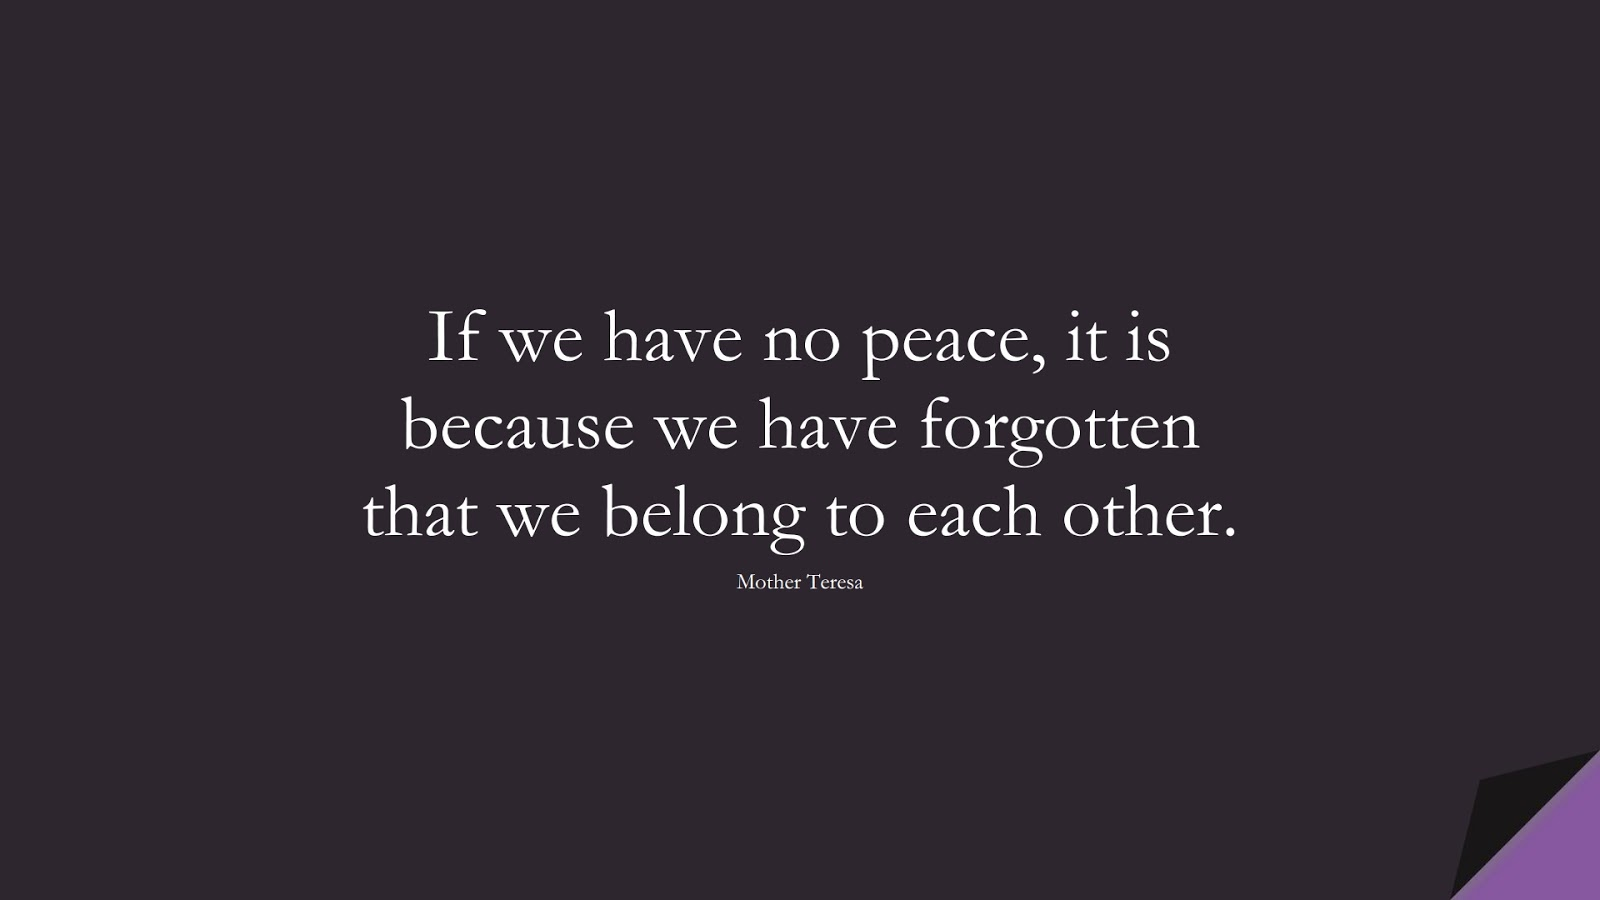 If we have no peace, it is because we have forgotten that we belong to each other. (Mother Teresa);  #HumanityQuotes